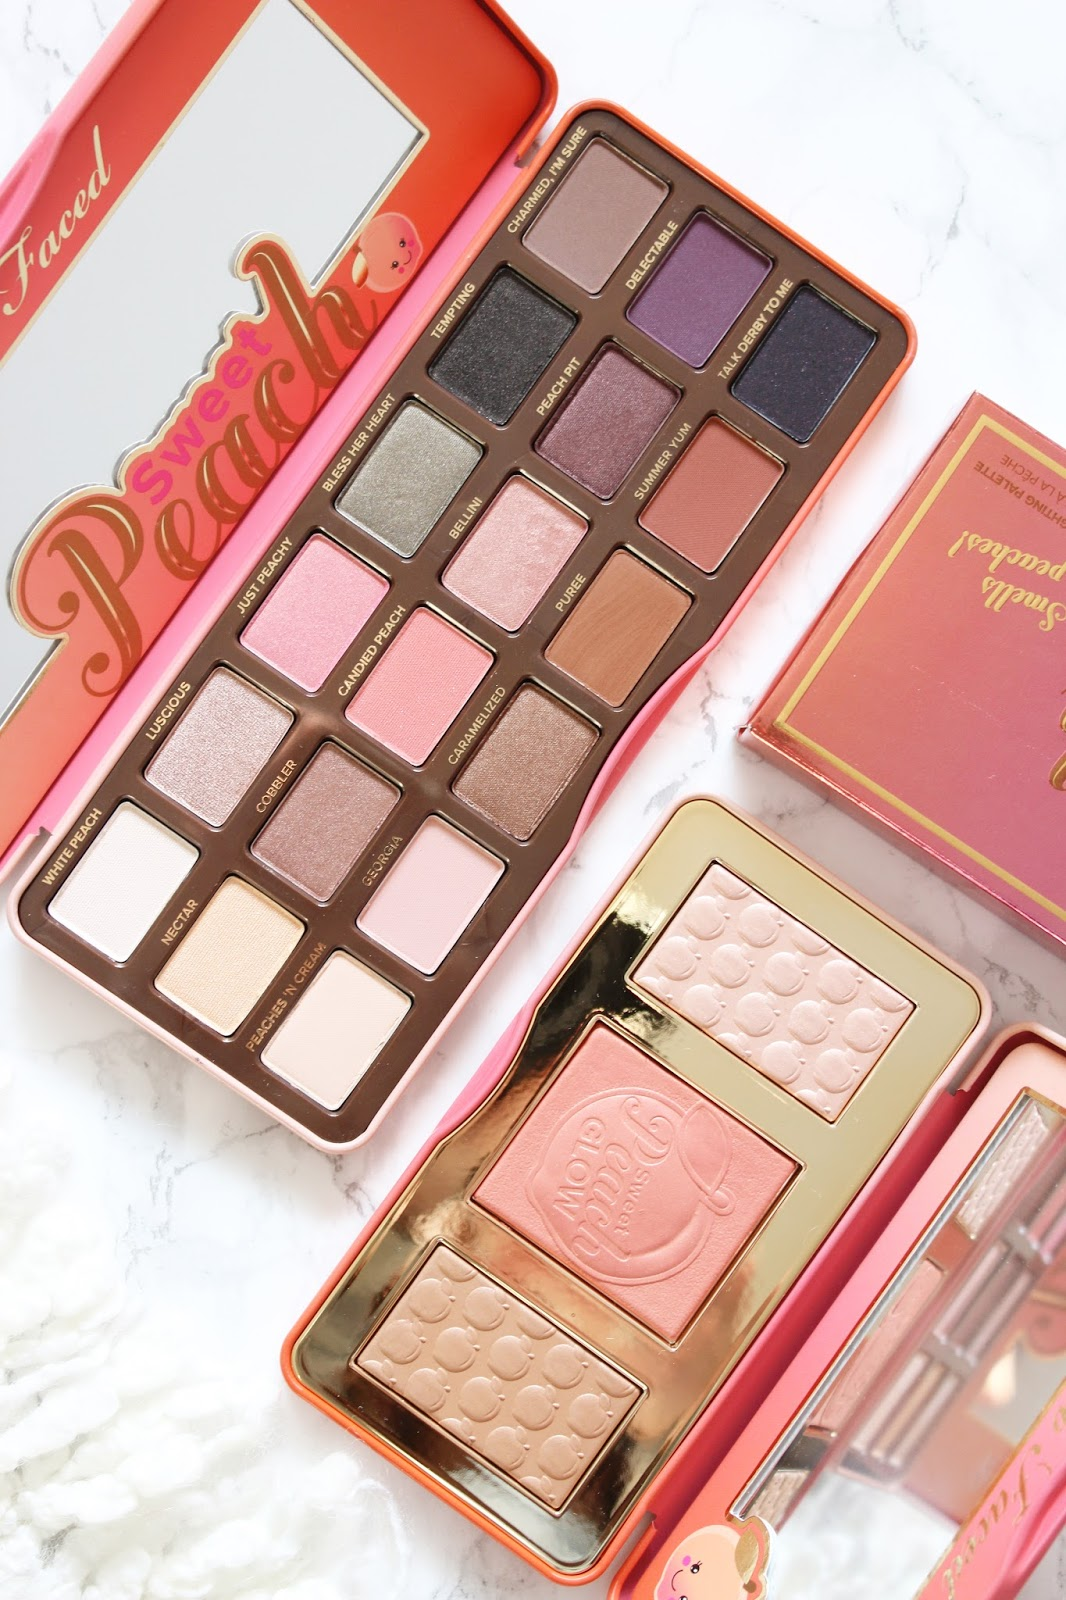 Too Faced's Sweet Peach Eyeshadow & Glow Palette